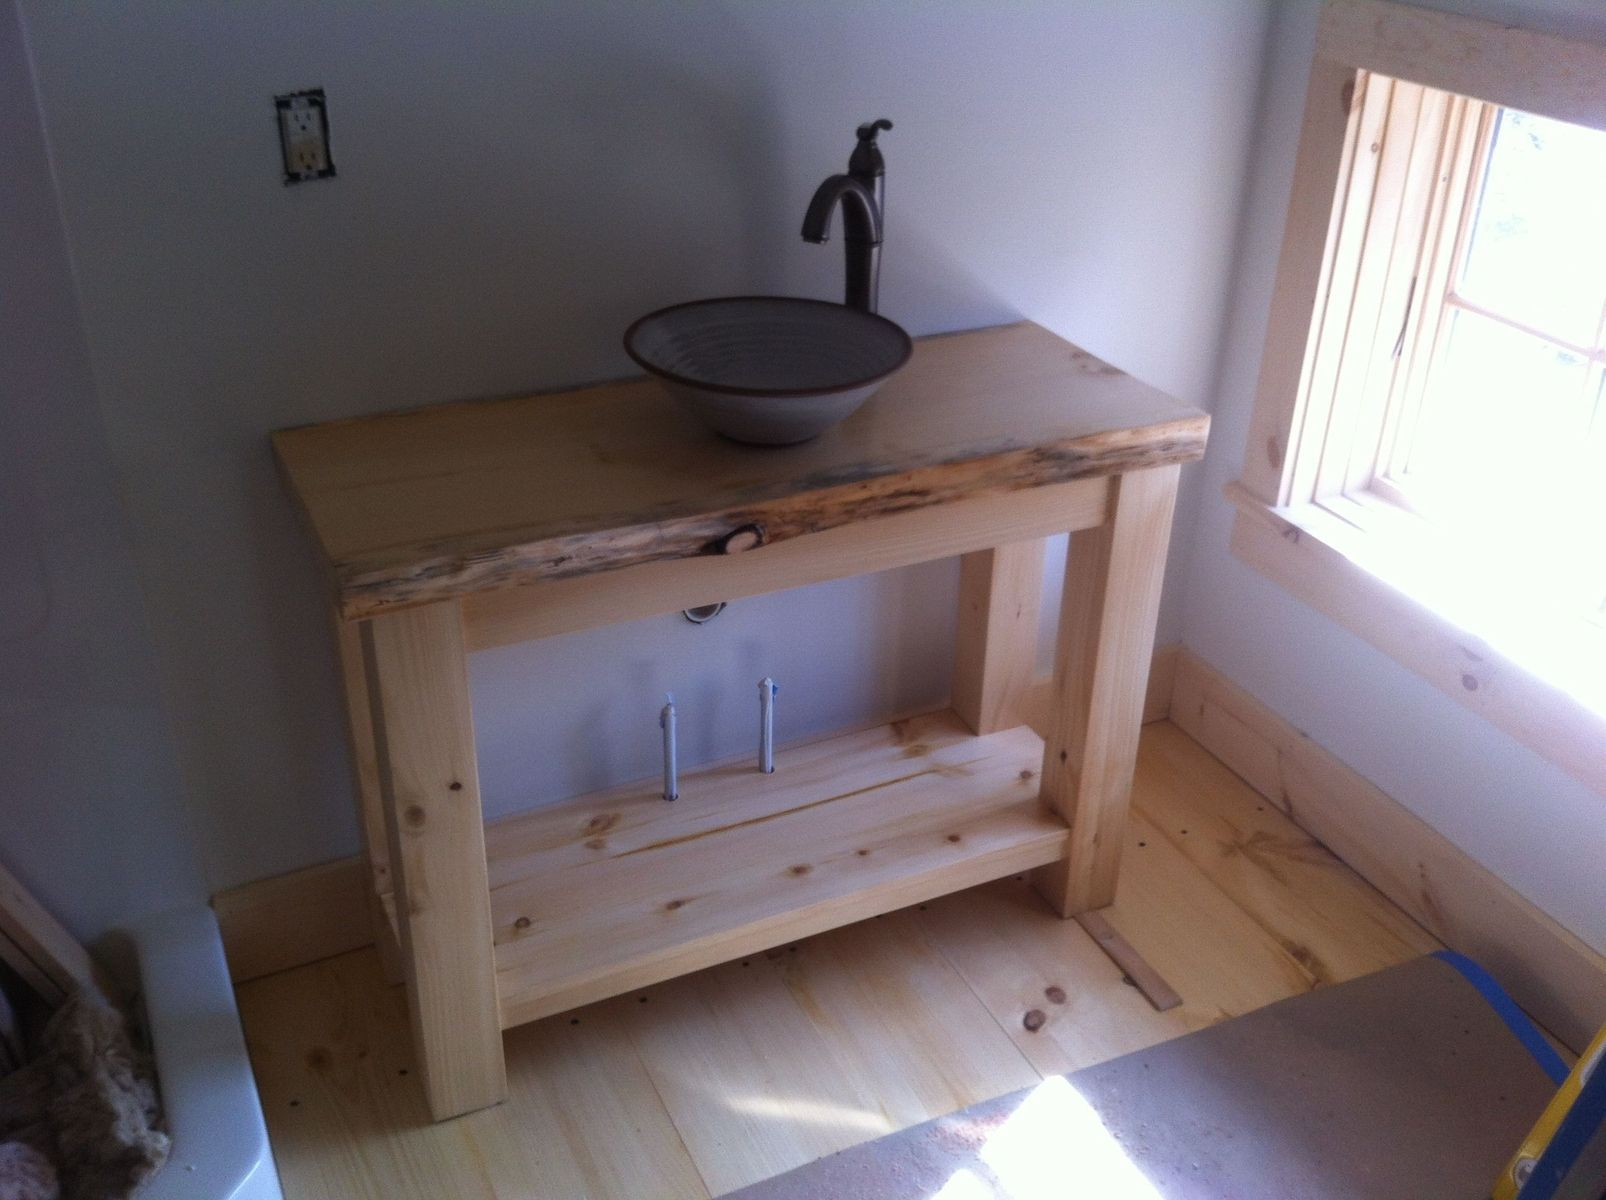 Bathroom Cabinets Storage Rustic Pine Vanity With Vessel Sink